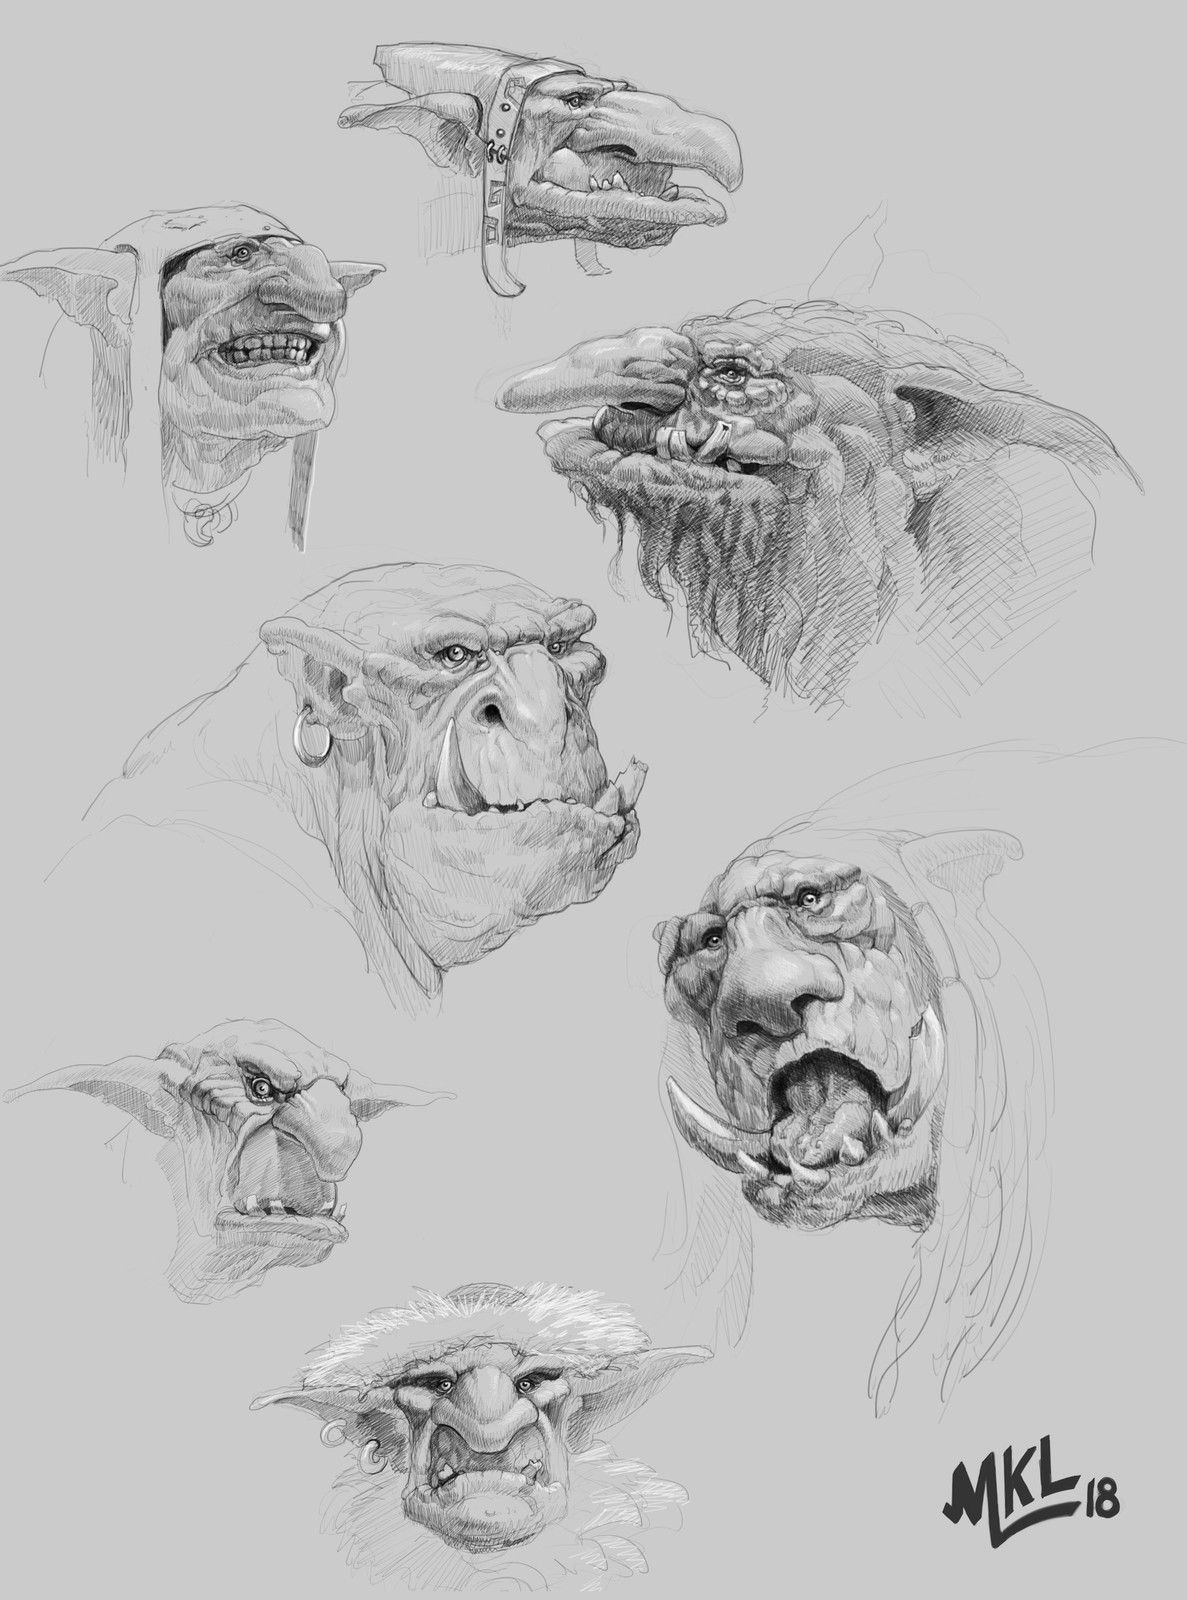 Pin by Jerzy Gorczyca on Sketches and Drawing in 2019